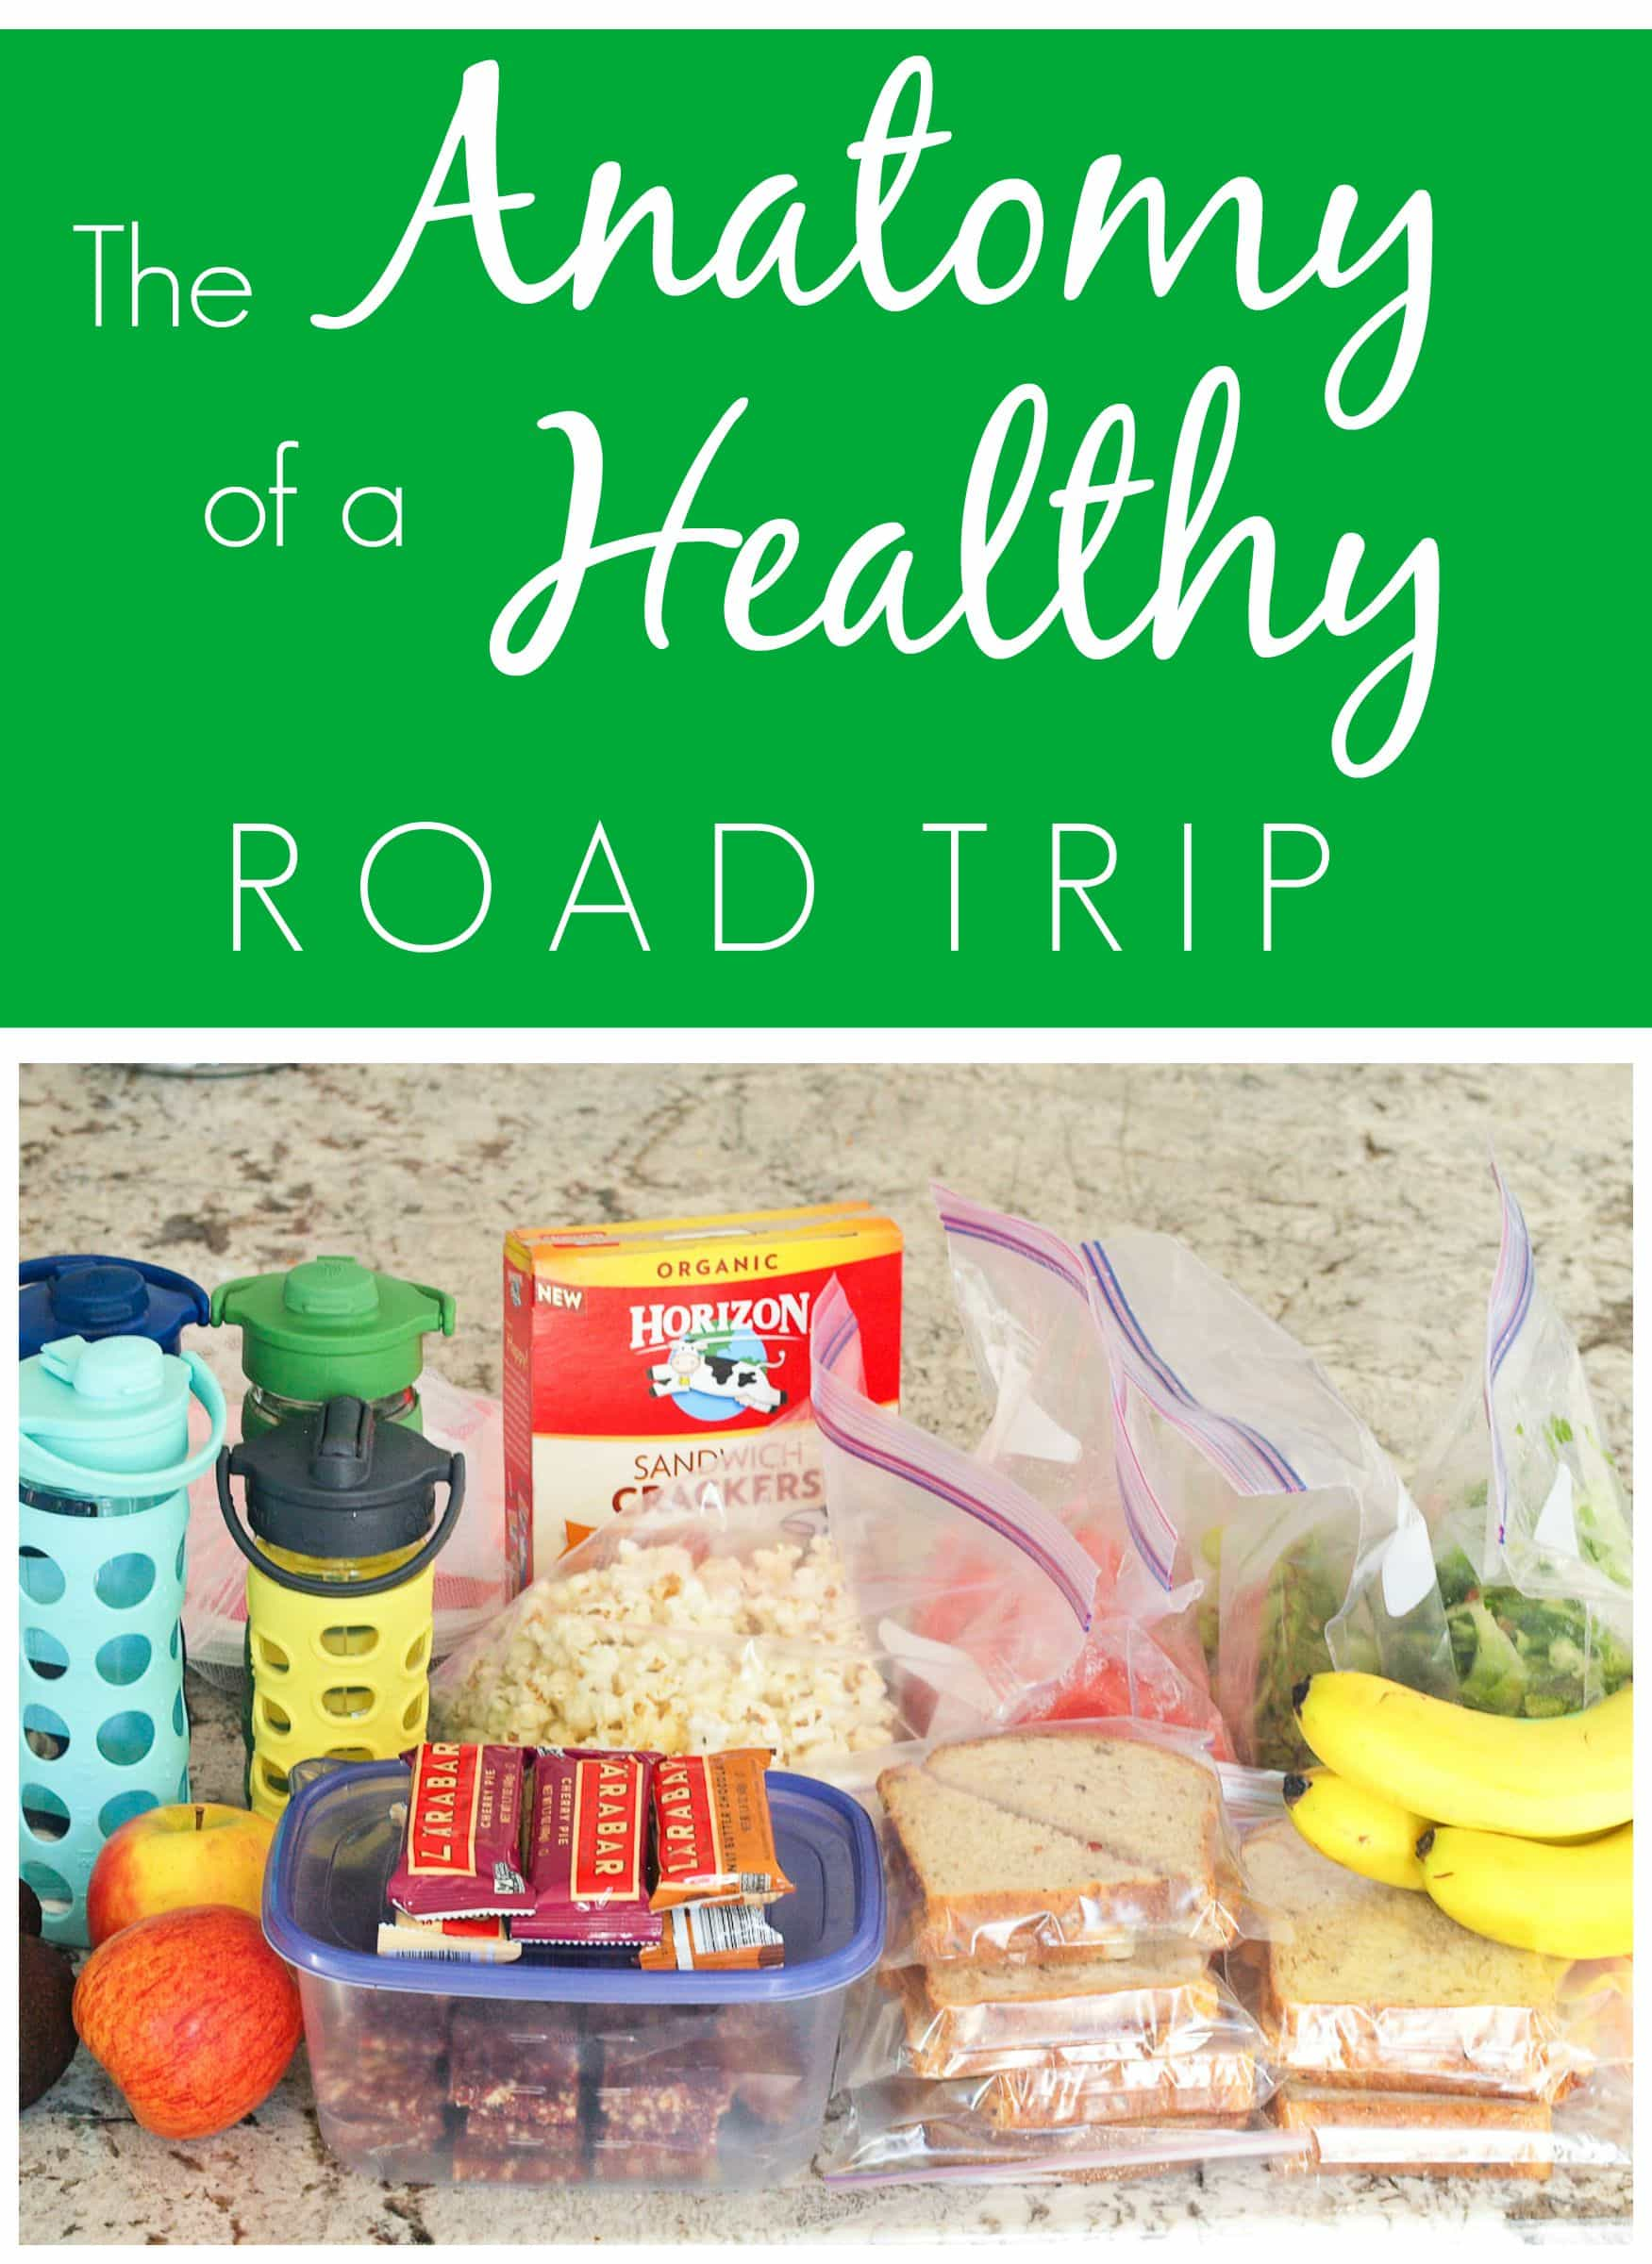 Watch Healthy Eating Tips for Road Trips video